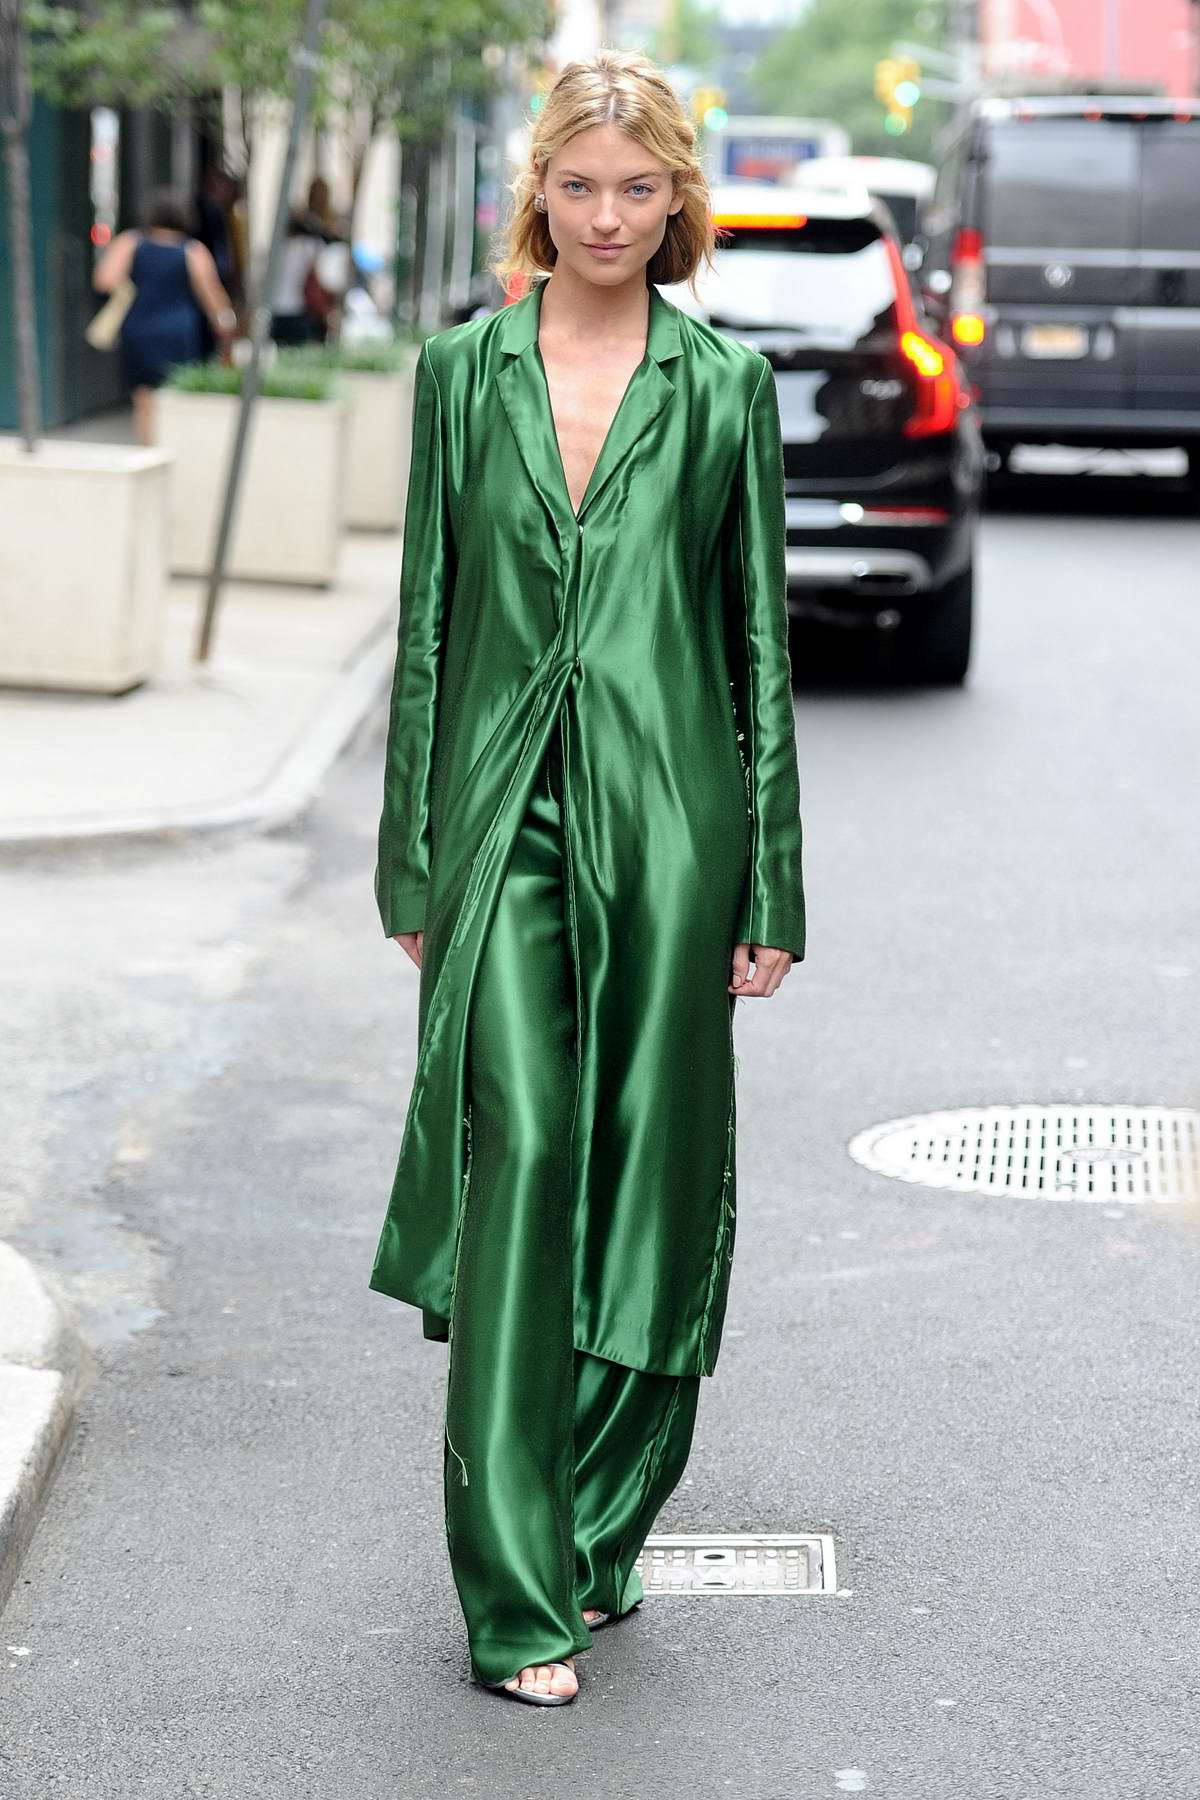 Martha Hunt seen wearing a green outfit as she heads out during New York Fashion Week in New York City